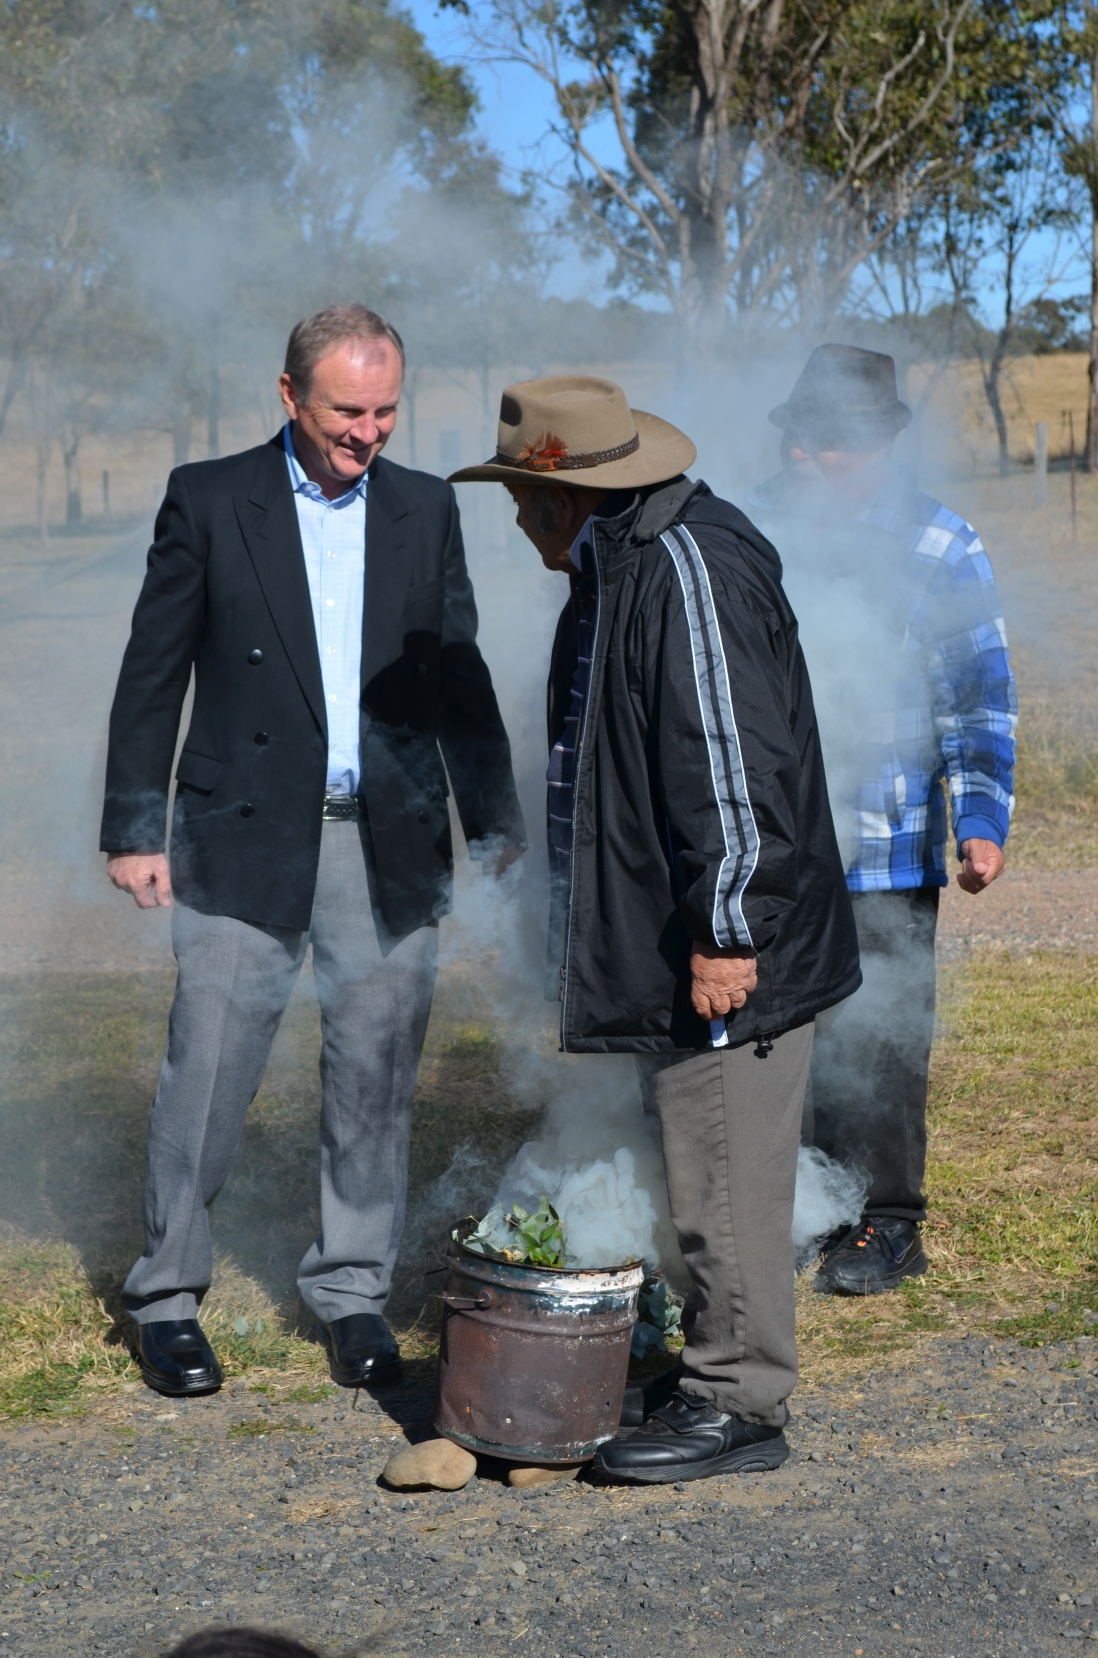 Local member Kevin Conolly with local Darug leaders during smoking ceremony